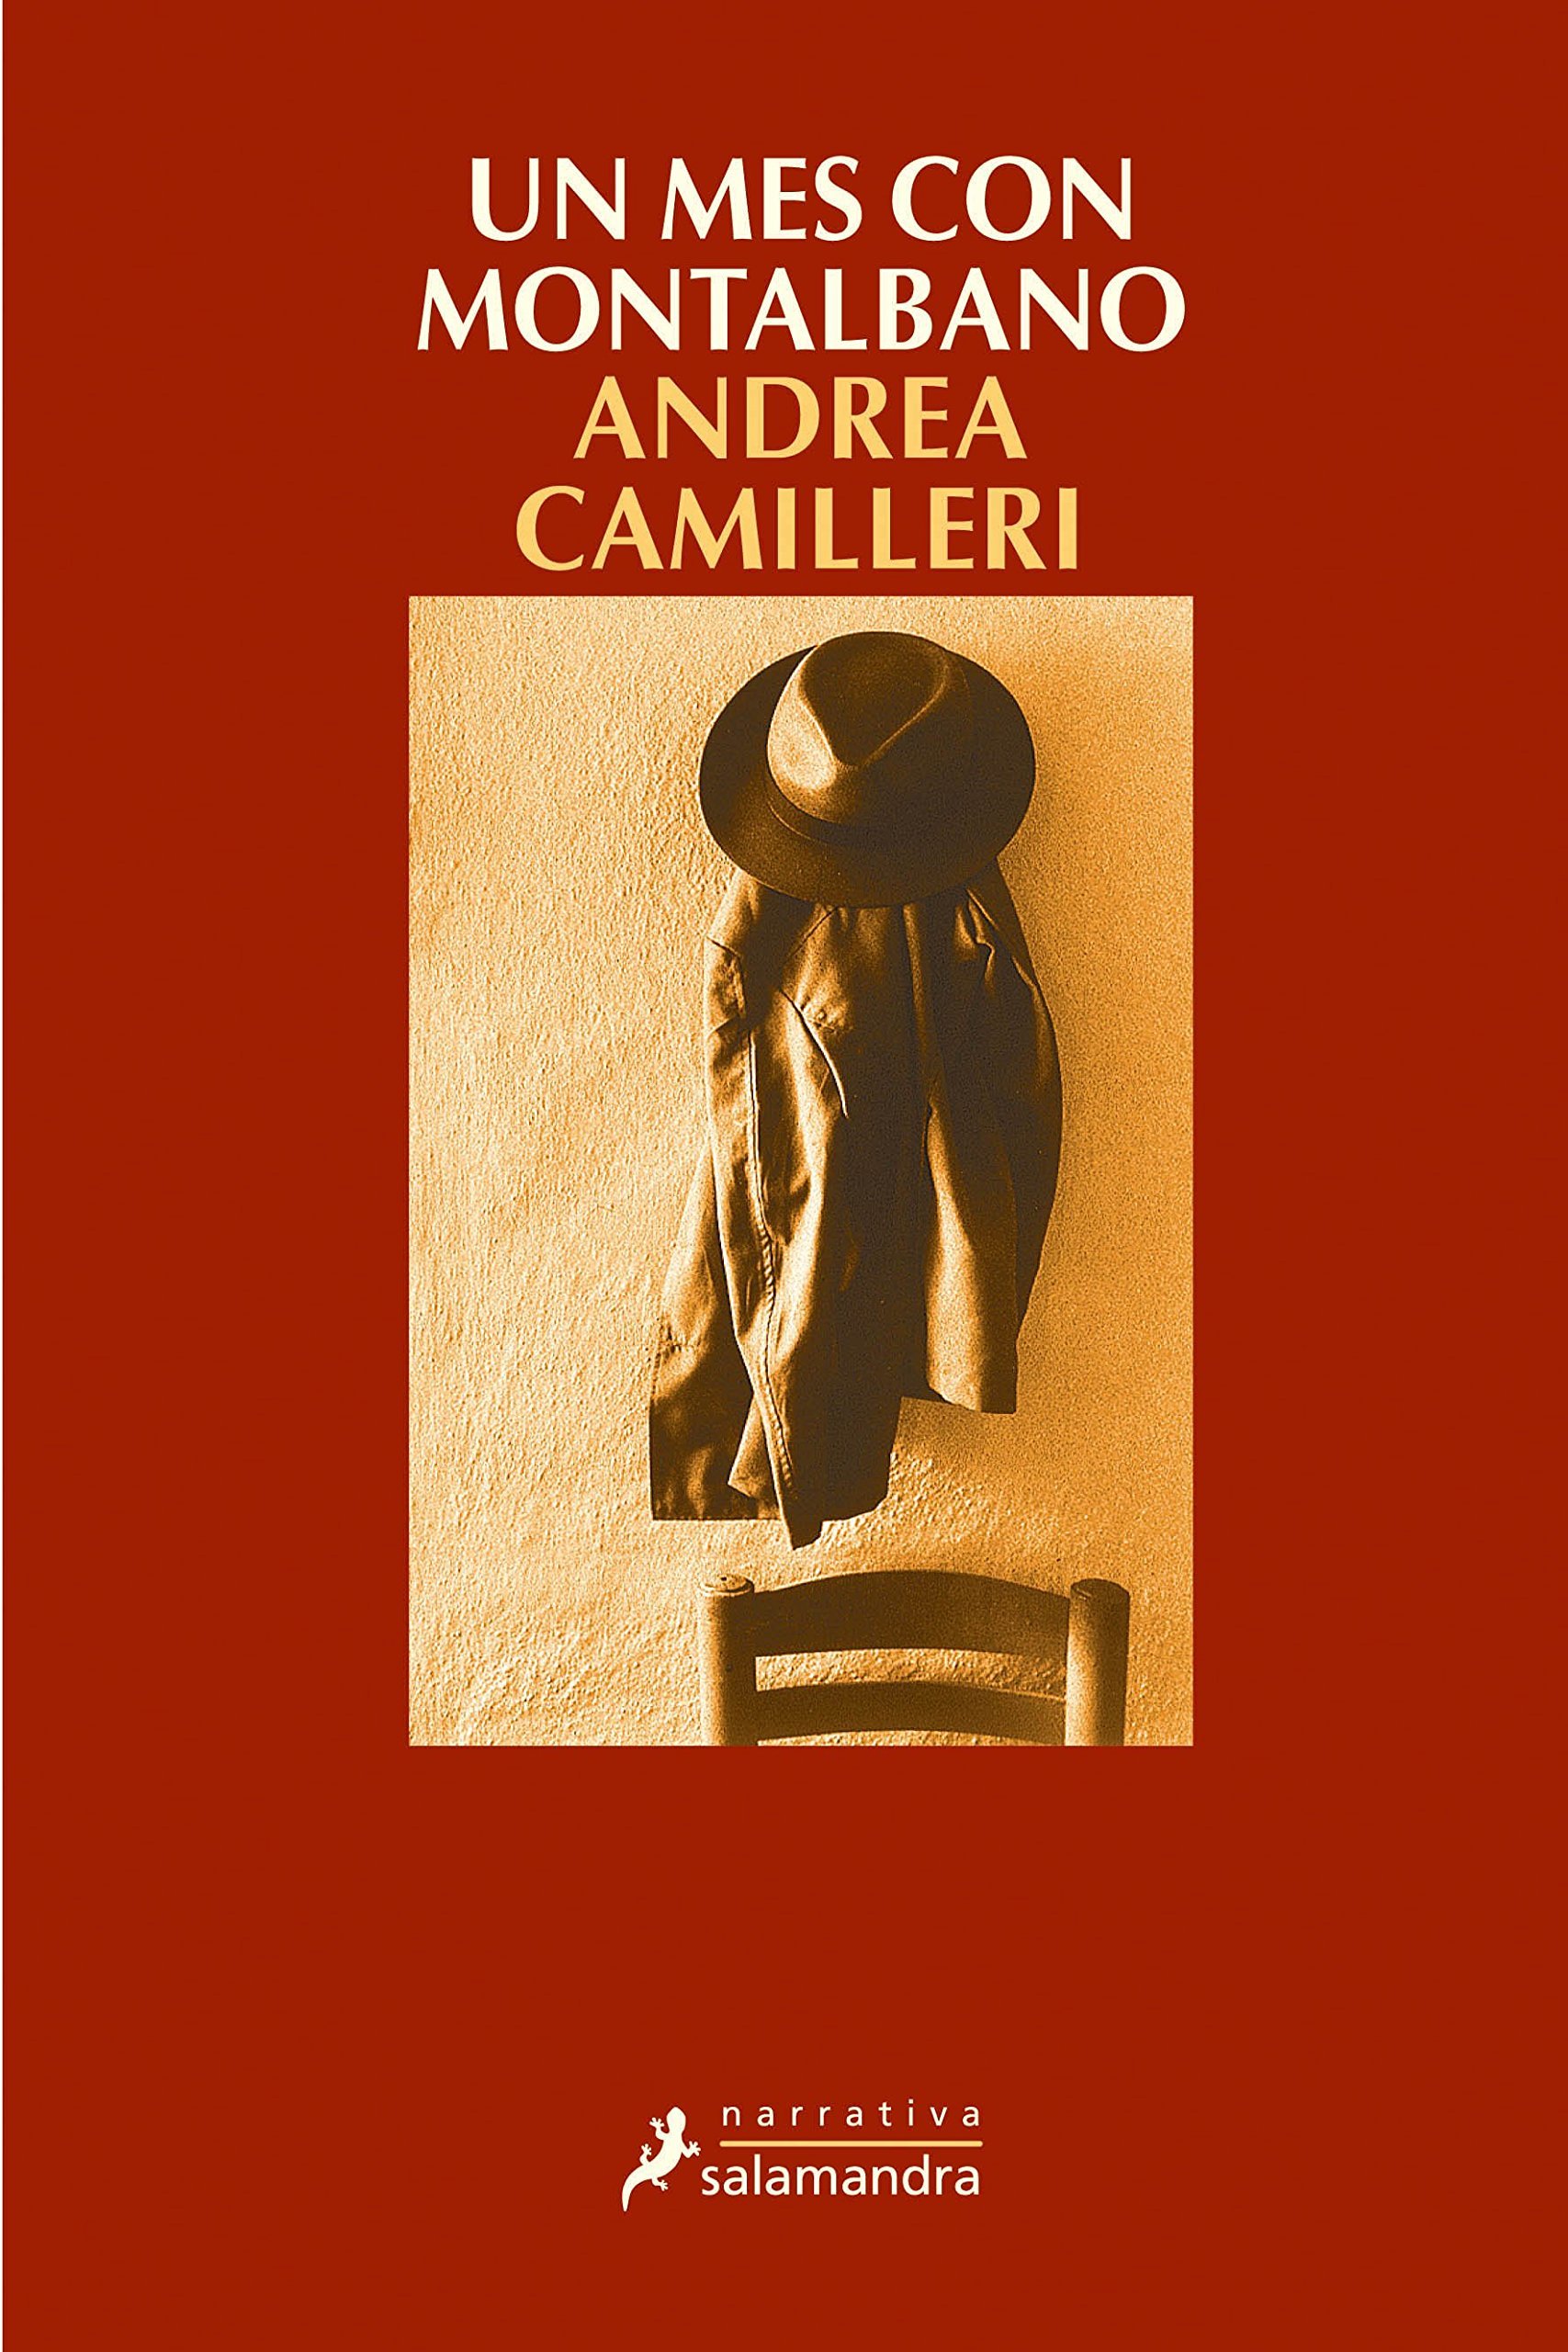 Un mes con Moltalbano: Montalbano - Libro 5 (Narrativa) Tapa blanda – 10 feb 1999 Andrea Camilleri 8478887695 General Spanish: Adult Fiction